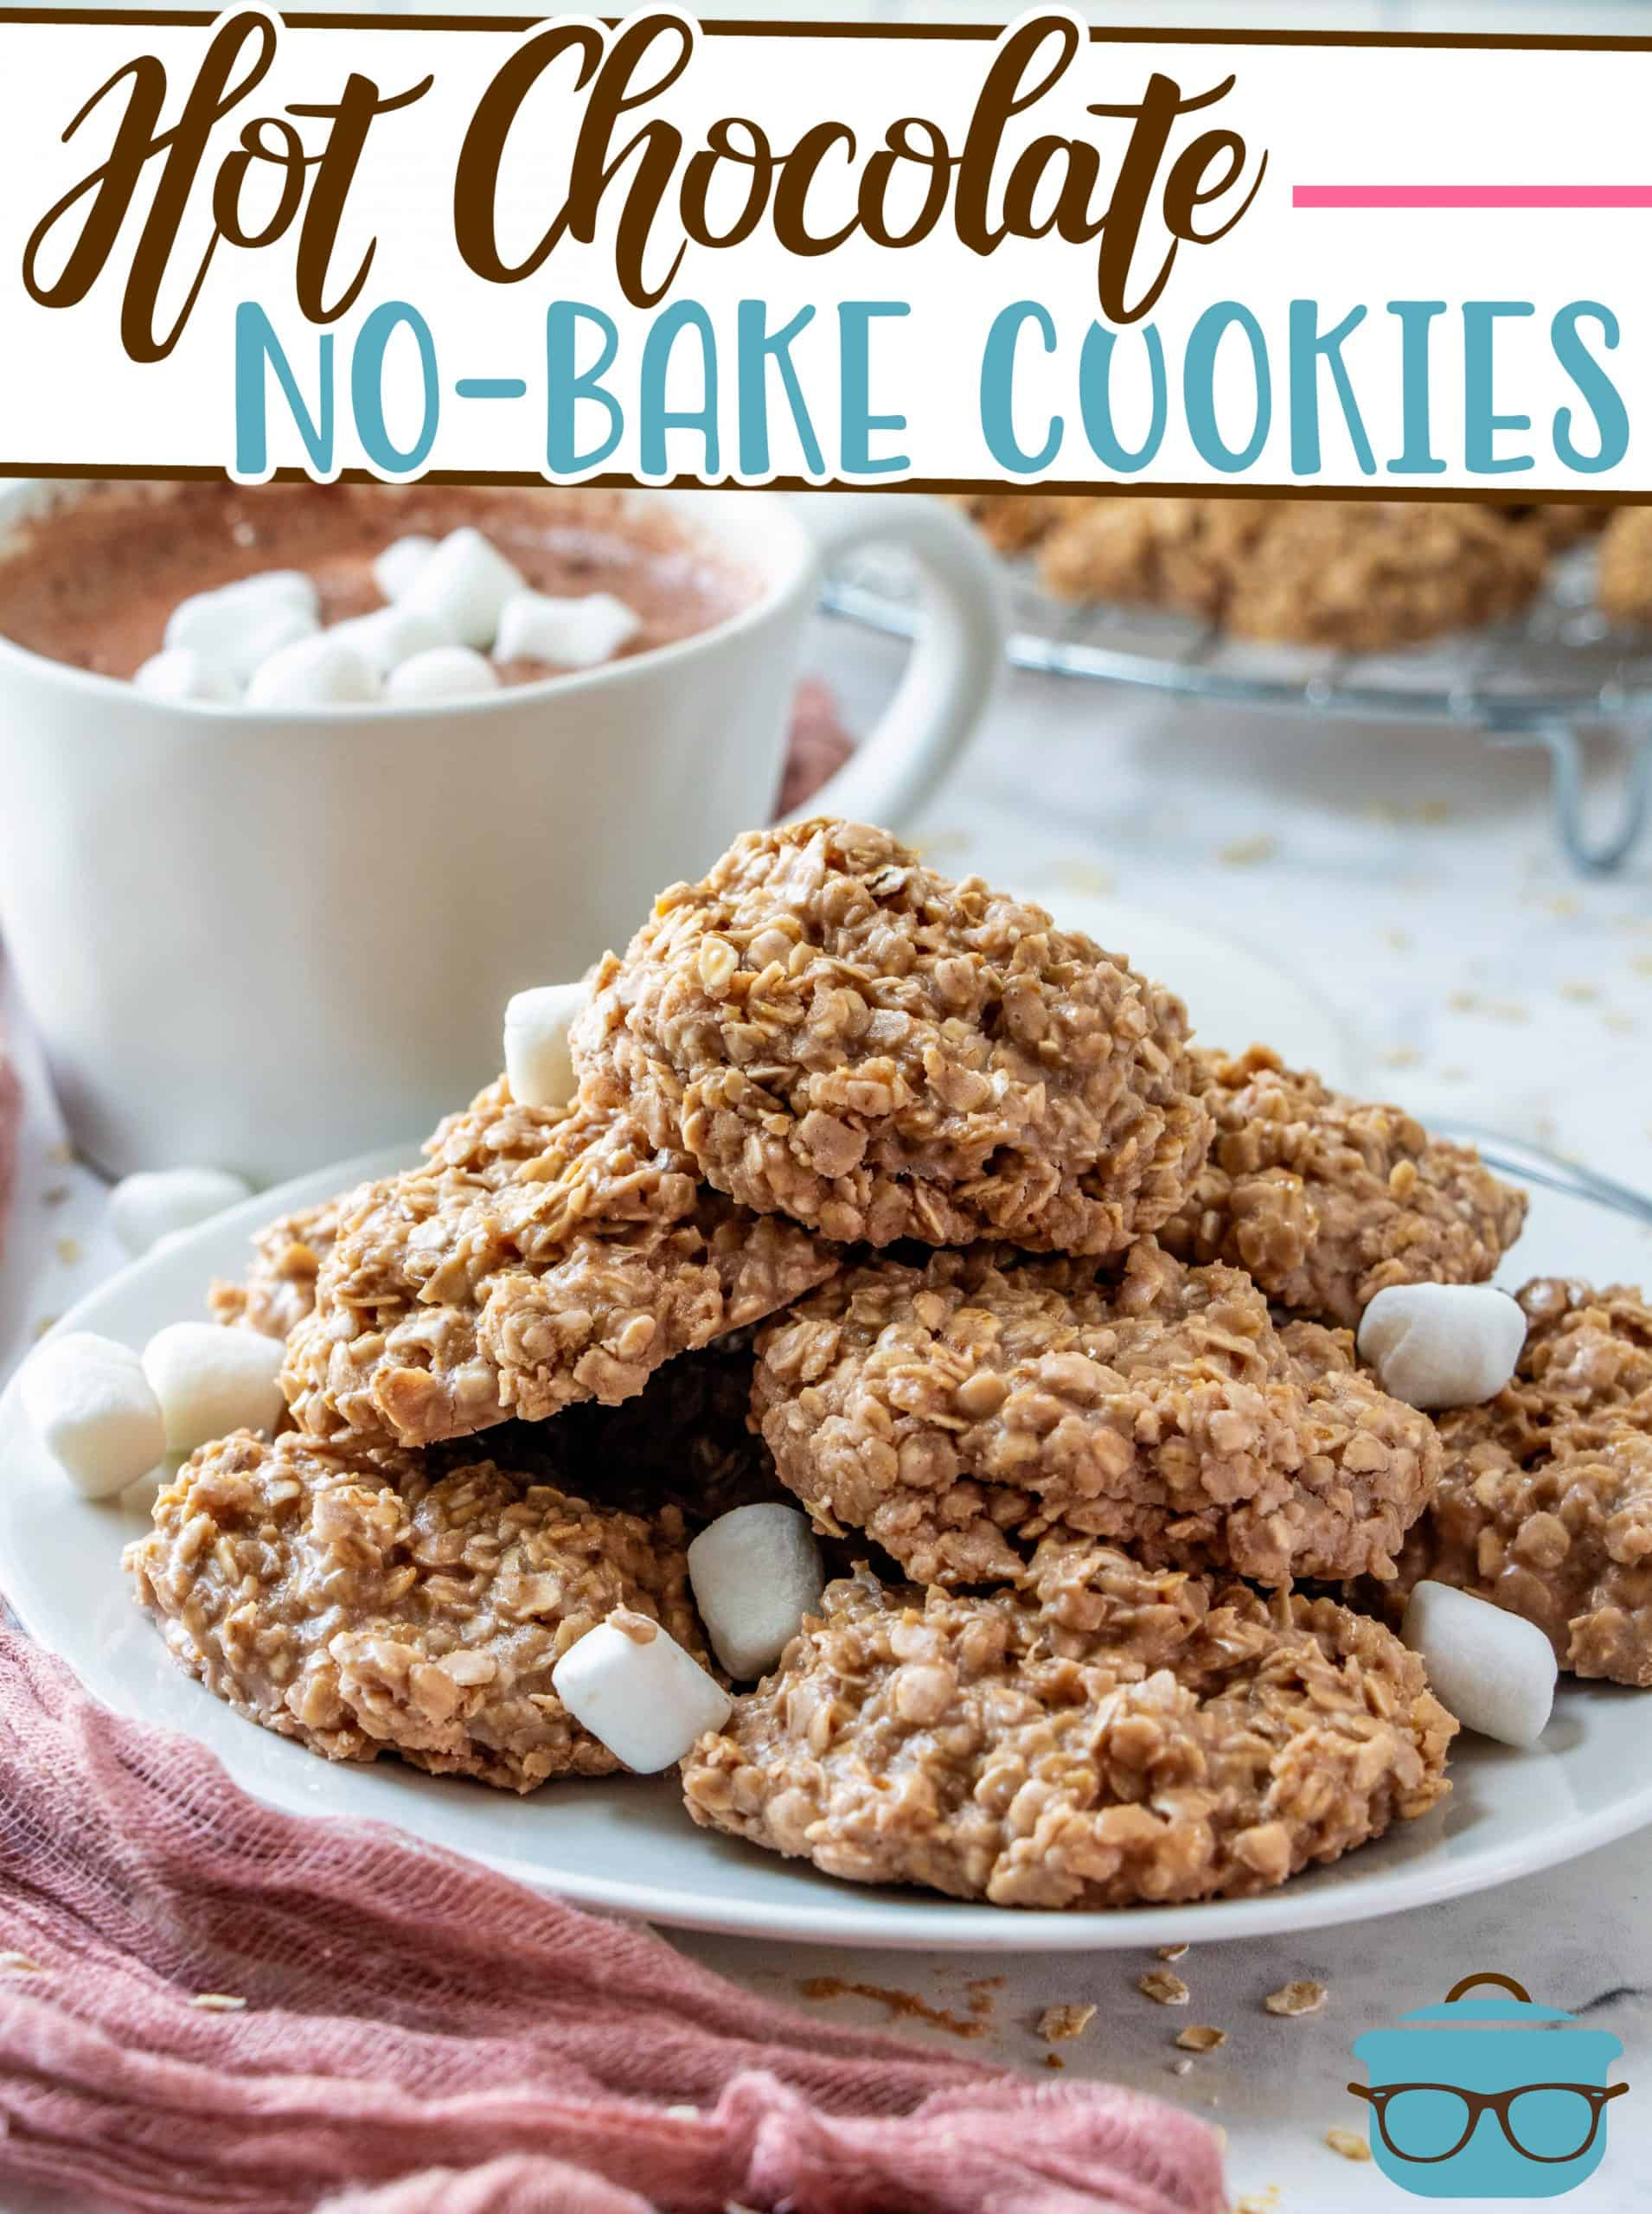 This recipe for Hot Chocolate No-Bake Cookies can be made in minutes! Oats, butter, marshmallow fluff and hot cocoa. So good!